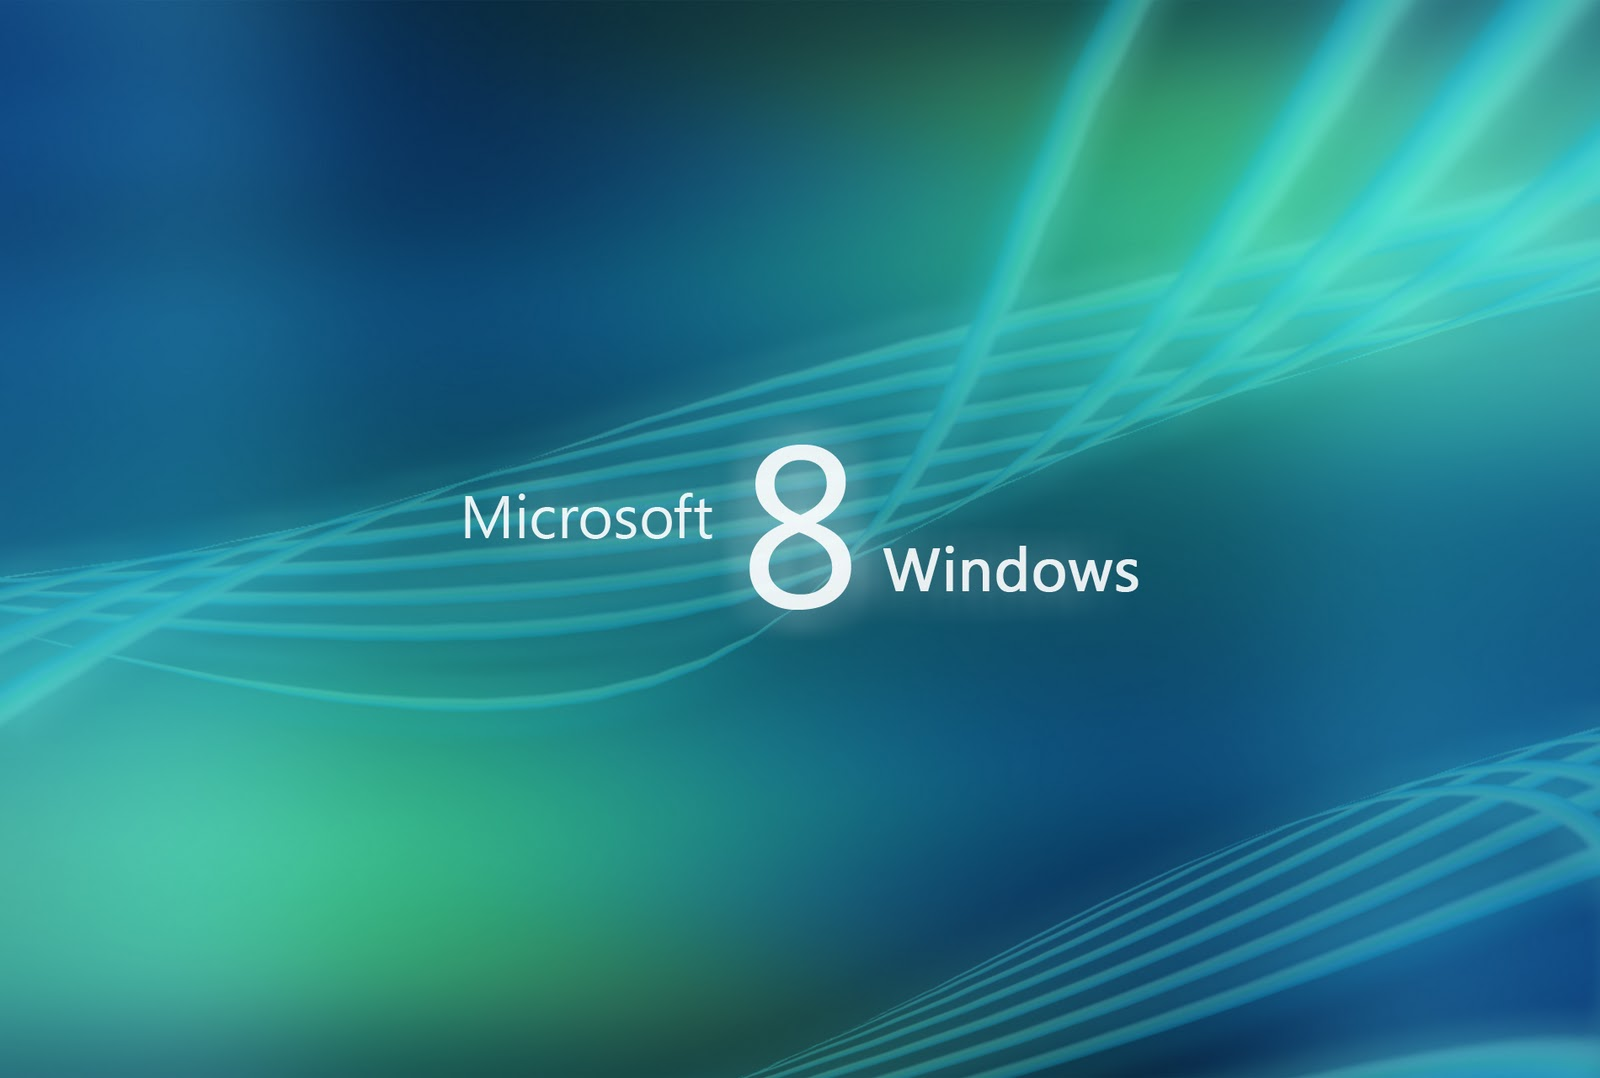 windows 8 hd wallpapers windows 8 hd wallpapers windows 8 1600x1078